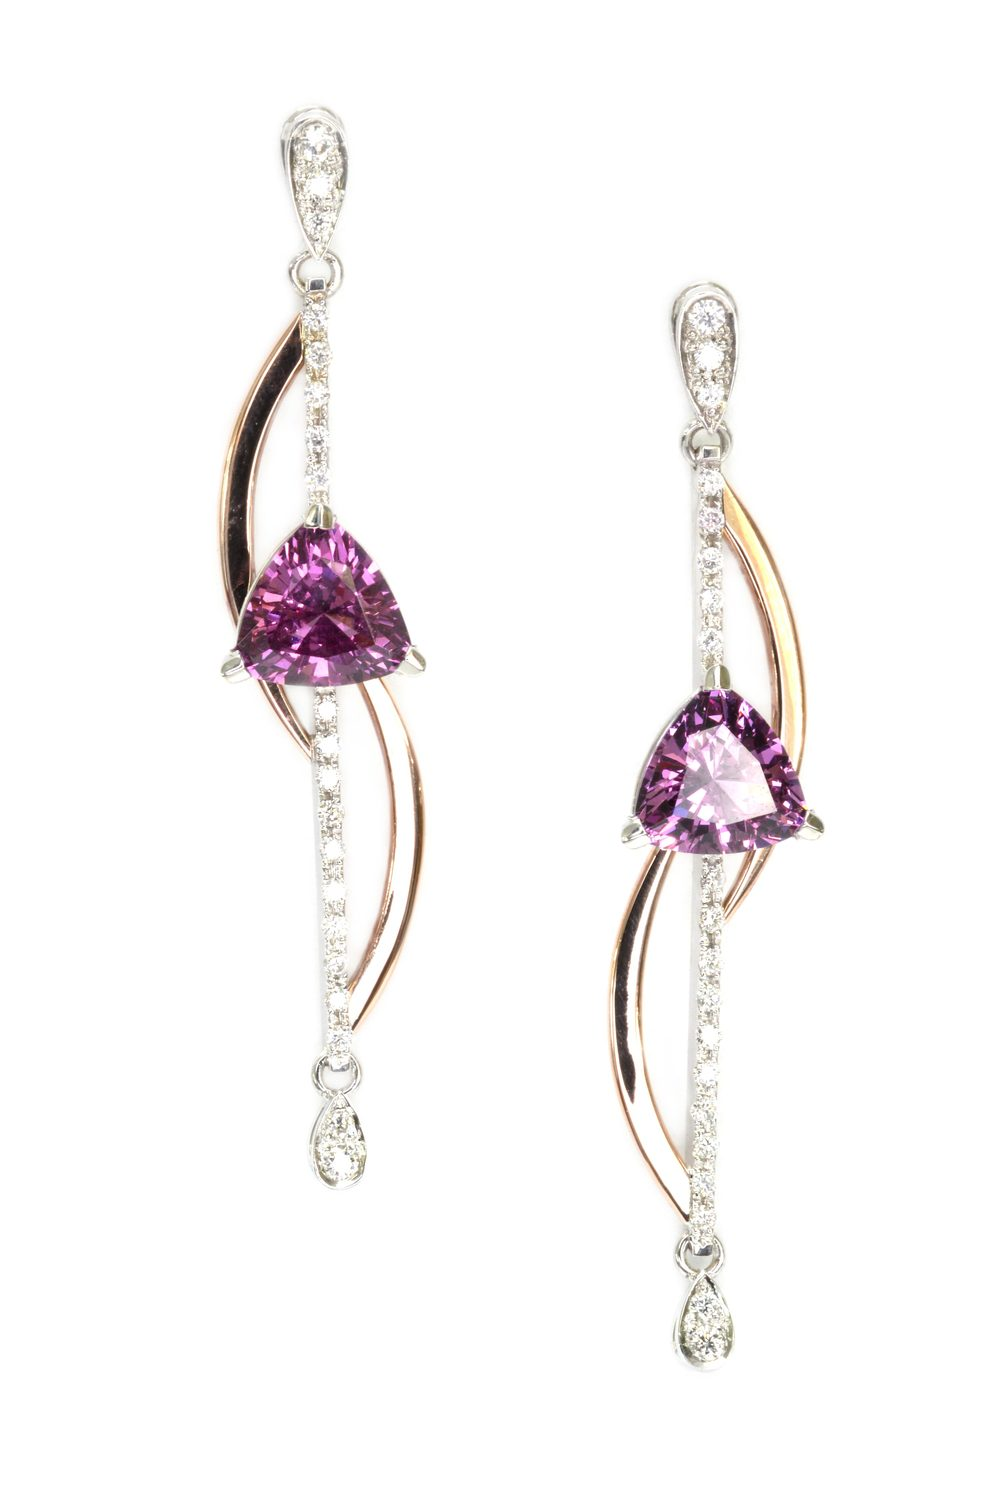 "14k white and yellow gold raspberry rhodolite earrings accented with pav     Normal   0           false   false   false     EN-US   X-NONE   X-NONE                                        MicrosoftInternetExplorer4                                         é                                                                                                                                                                                                                                                                                            /* Style Definitions */  table.MsoNormalTable 	{mso-style-name:""Table Normal""; 	mso-tstyle-rowband-size:0; 	mso-tstyle-colband-size:0; 	mso-style-noshow:yes; 	mso-style-priority:99; 	mso-style-qformat:yes; 	mso-style-parent:""""; 	mso-padding-alt:0in 5.4pt 0in 5.4pt; 	mso-para-margin-top:0in; 	mso-para-margin-right:0in; 	mso-para-margin-bottom:10.0pt; 	mso-para-margin-left:0in; 	mso-pagination:widow-orphan; 	font-size:11.0pt; 	font-family:""Calibri"",""sans-serif""; 	mso-ascii-font-family:Calibri; 	mso-ascii-theme-font:minor-latin; 	mso-fareast-font-family:""Times New Roman""; 	mso-fareast-theme-font:minor-fareast; 	mso-hansi-font-family:Calibri; 	mso-hansi-theme-font:minor-latin;}                set diamonds, designed by Sharon Curtiss-Gal."